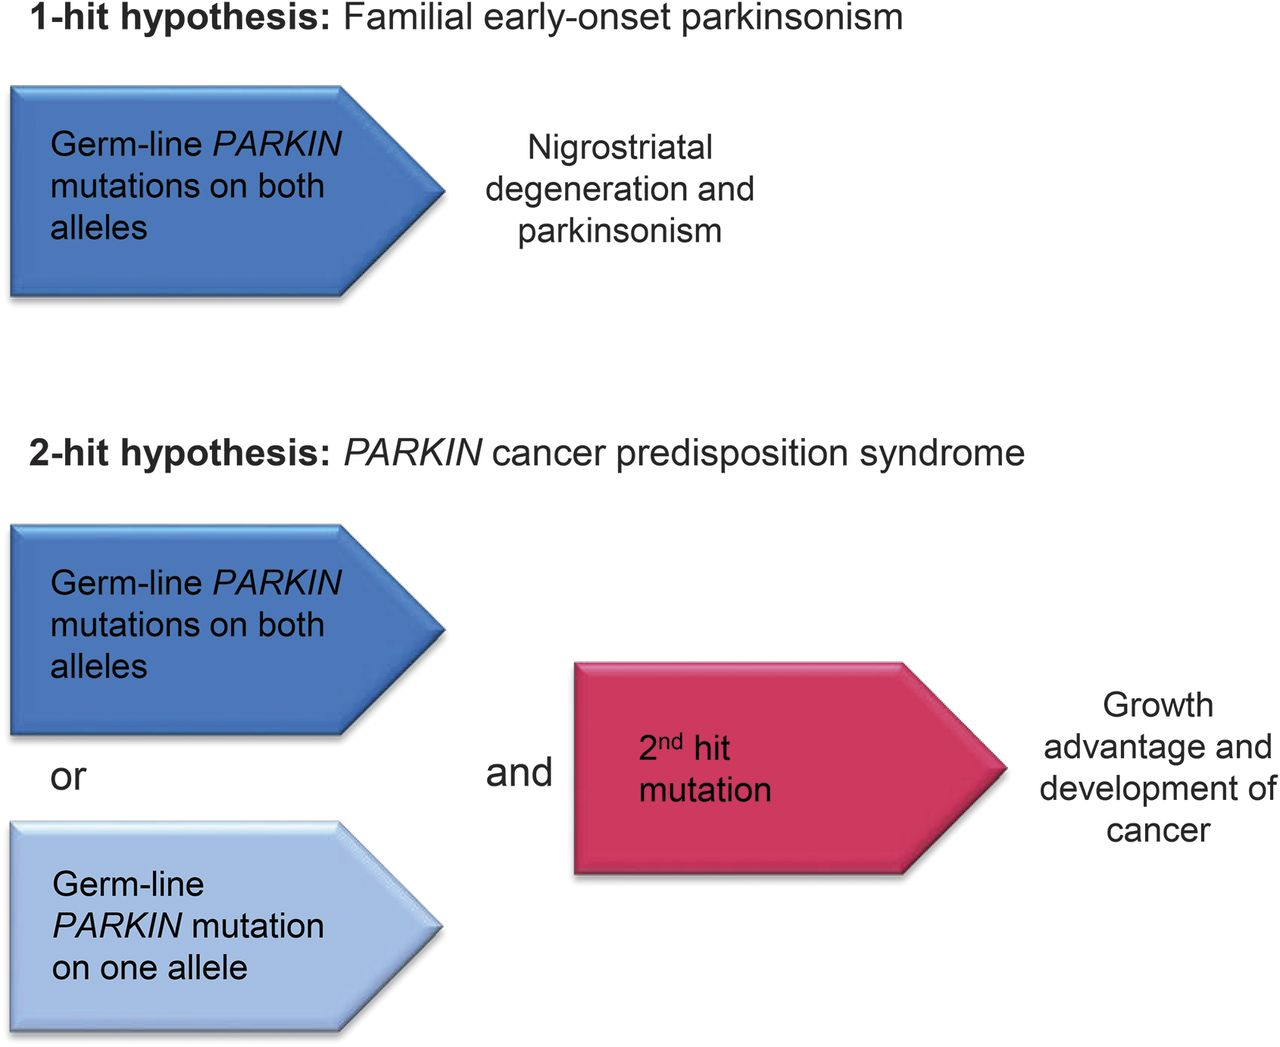 Is PARKIN Parkinsonism A Cancer Predisposition Syndrome